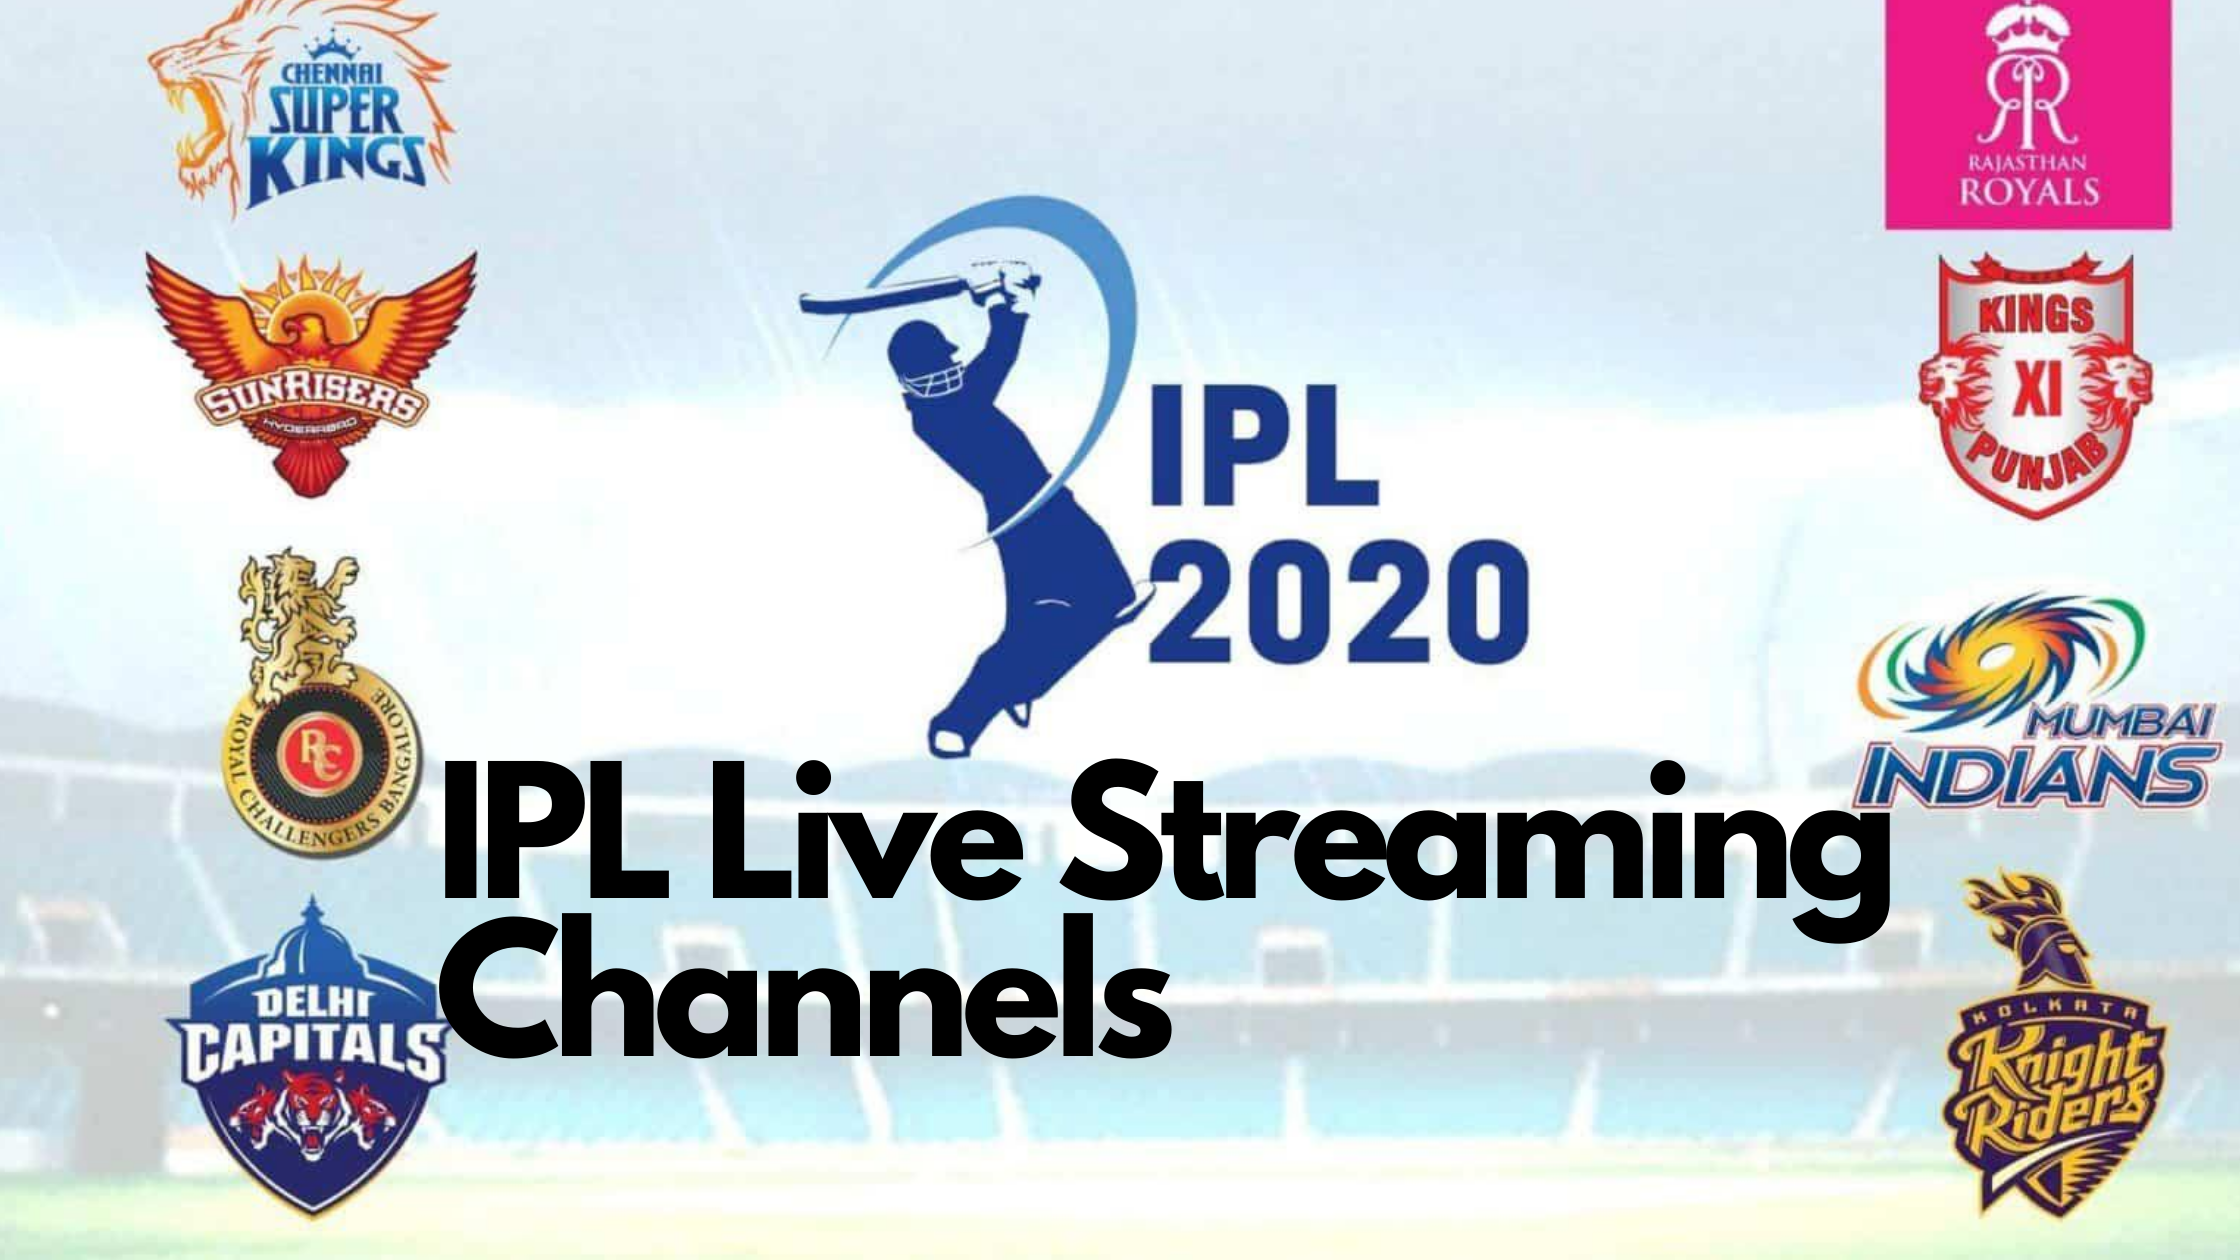 ipl live streaming channel